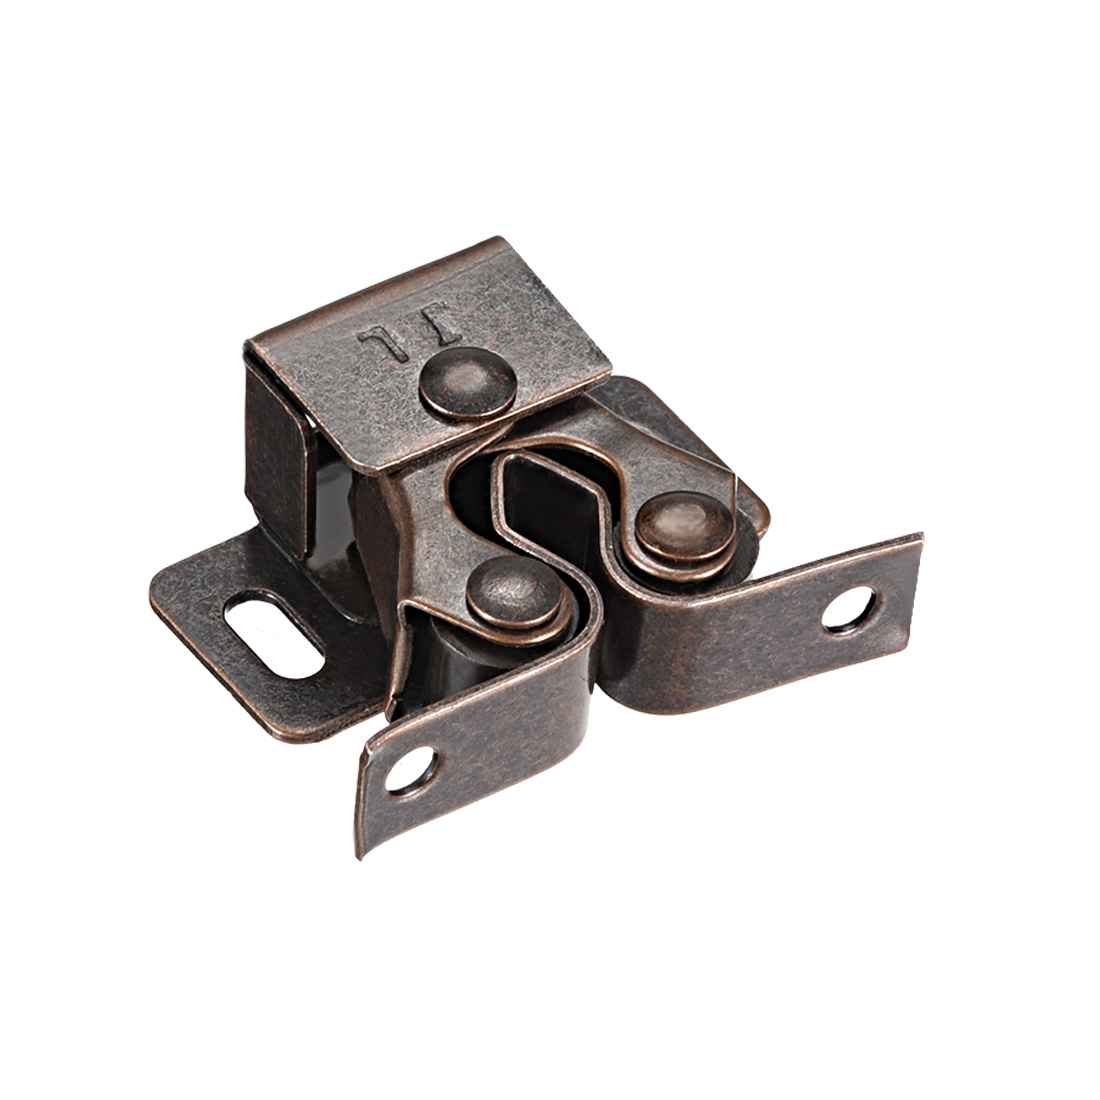 Cabinet Door Double Roller Catch Ball Latch with Prong Coppper Tone 10pcs